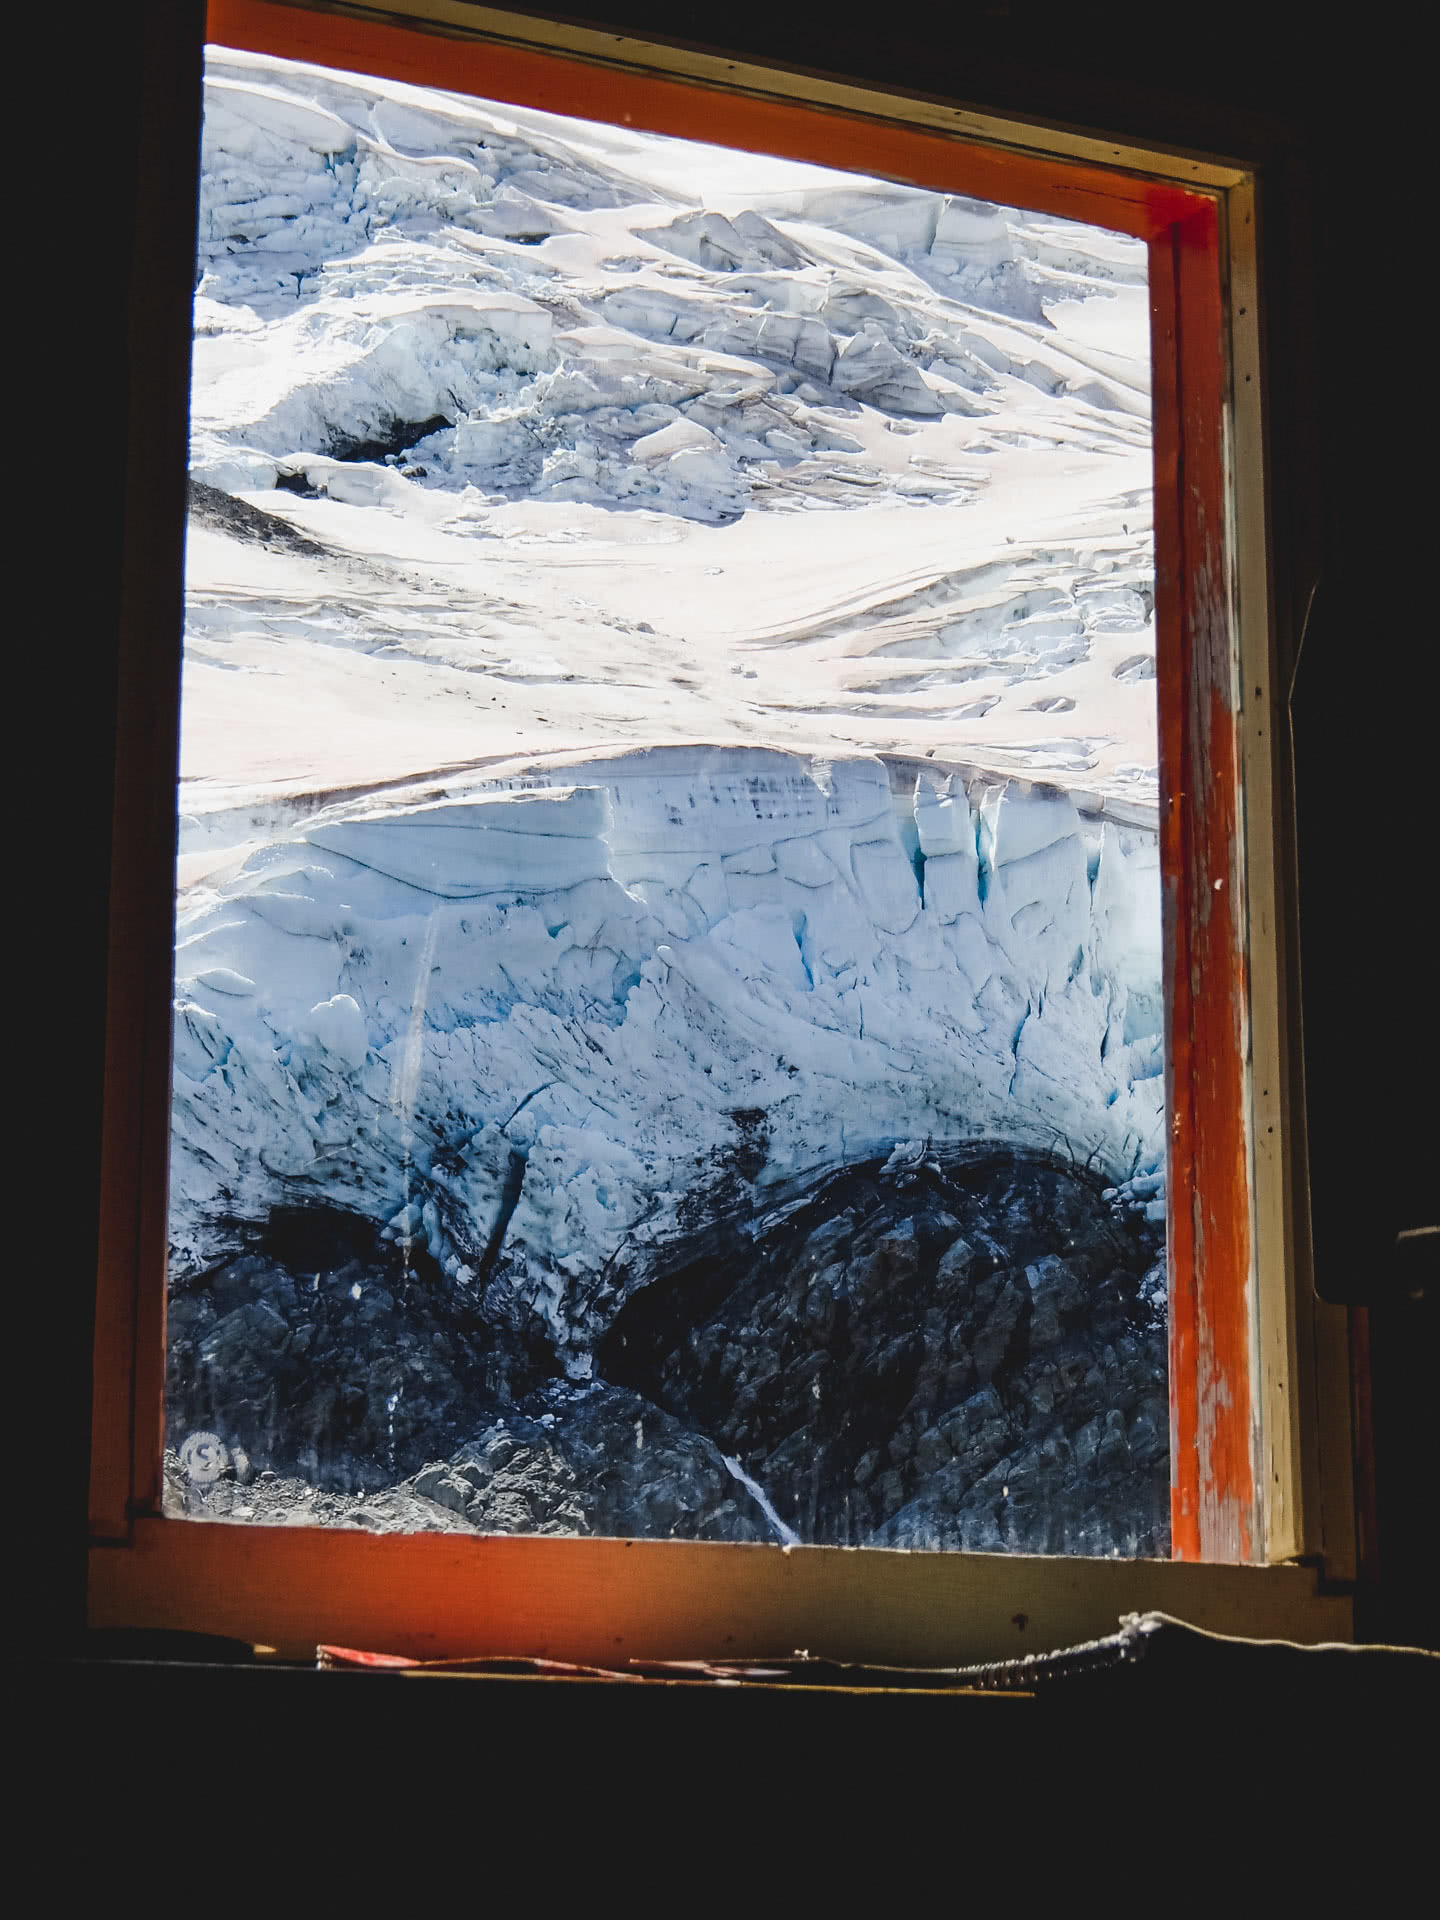 The Sefton Bivvy Route is Far Above the Aoraki Crowds (NZ), Nick Baulch, Mt Cook, hut, window, view, mountain, snow